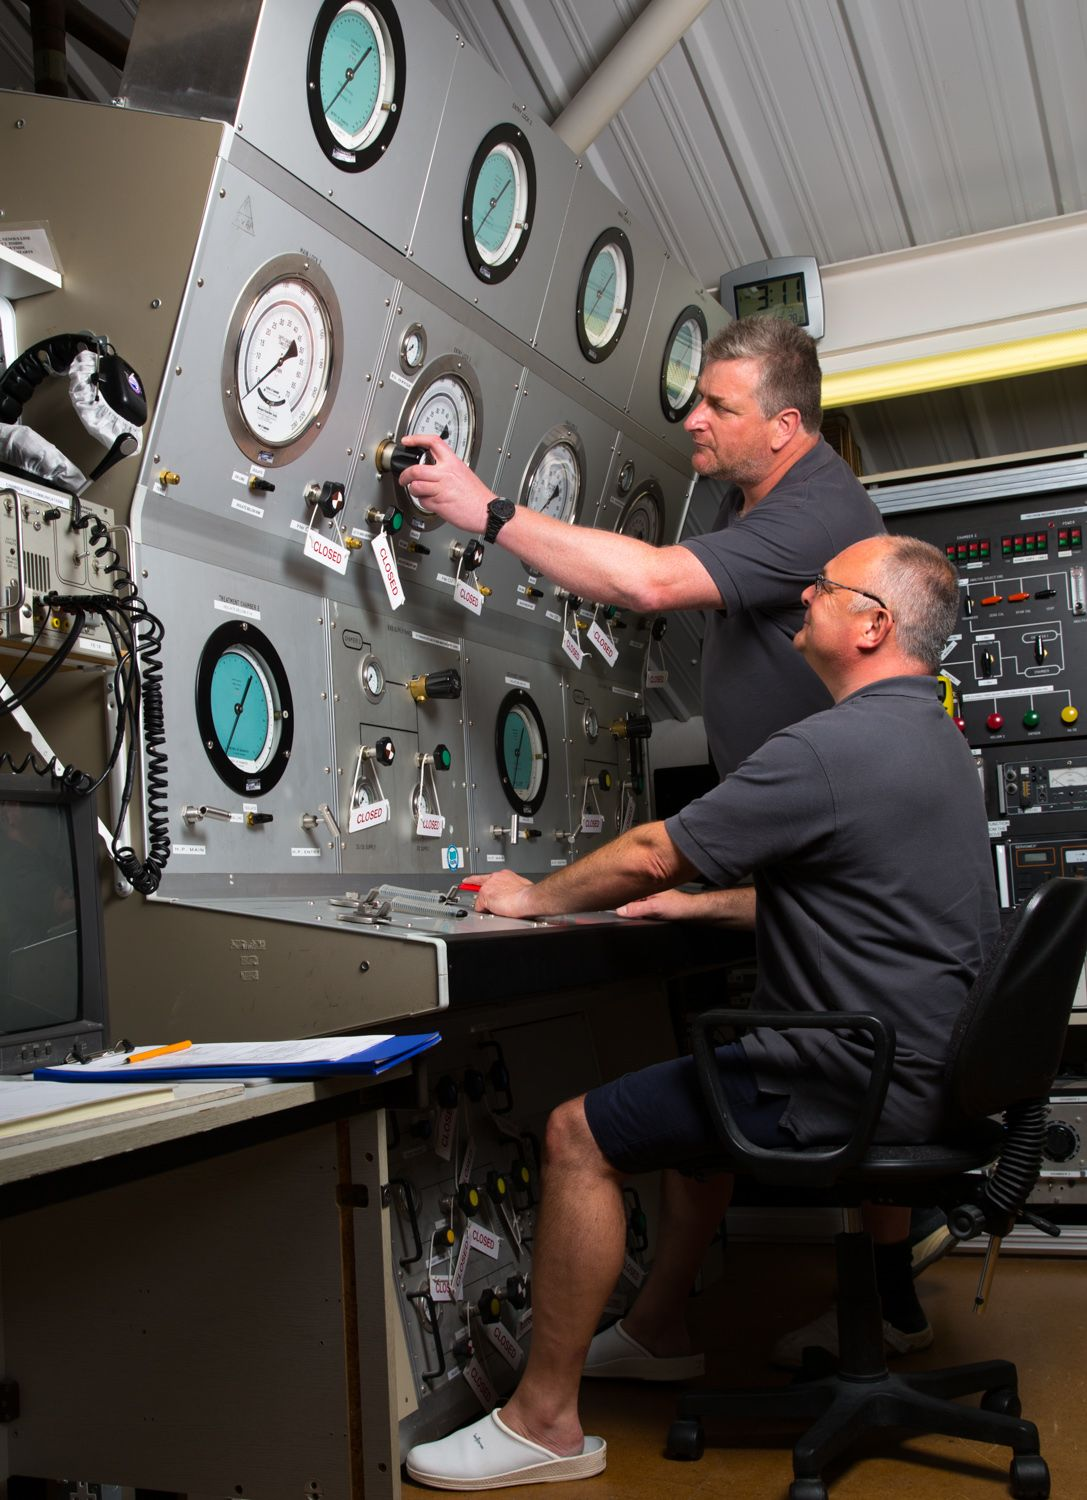 Hyperbaric Chamber Operator training at DDRC Healthcare's